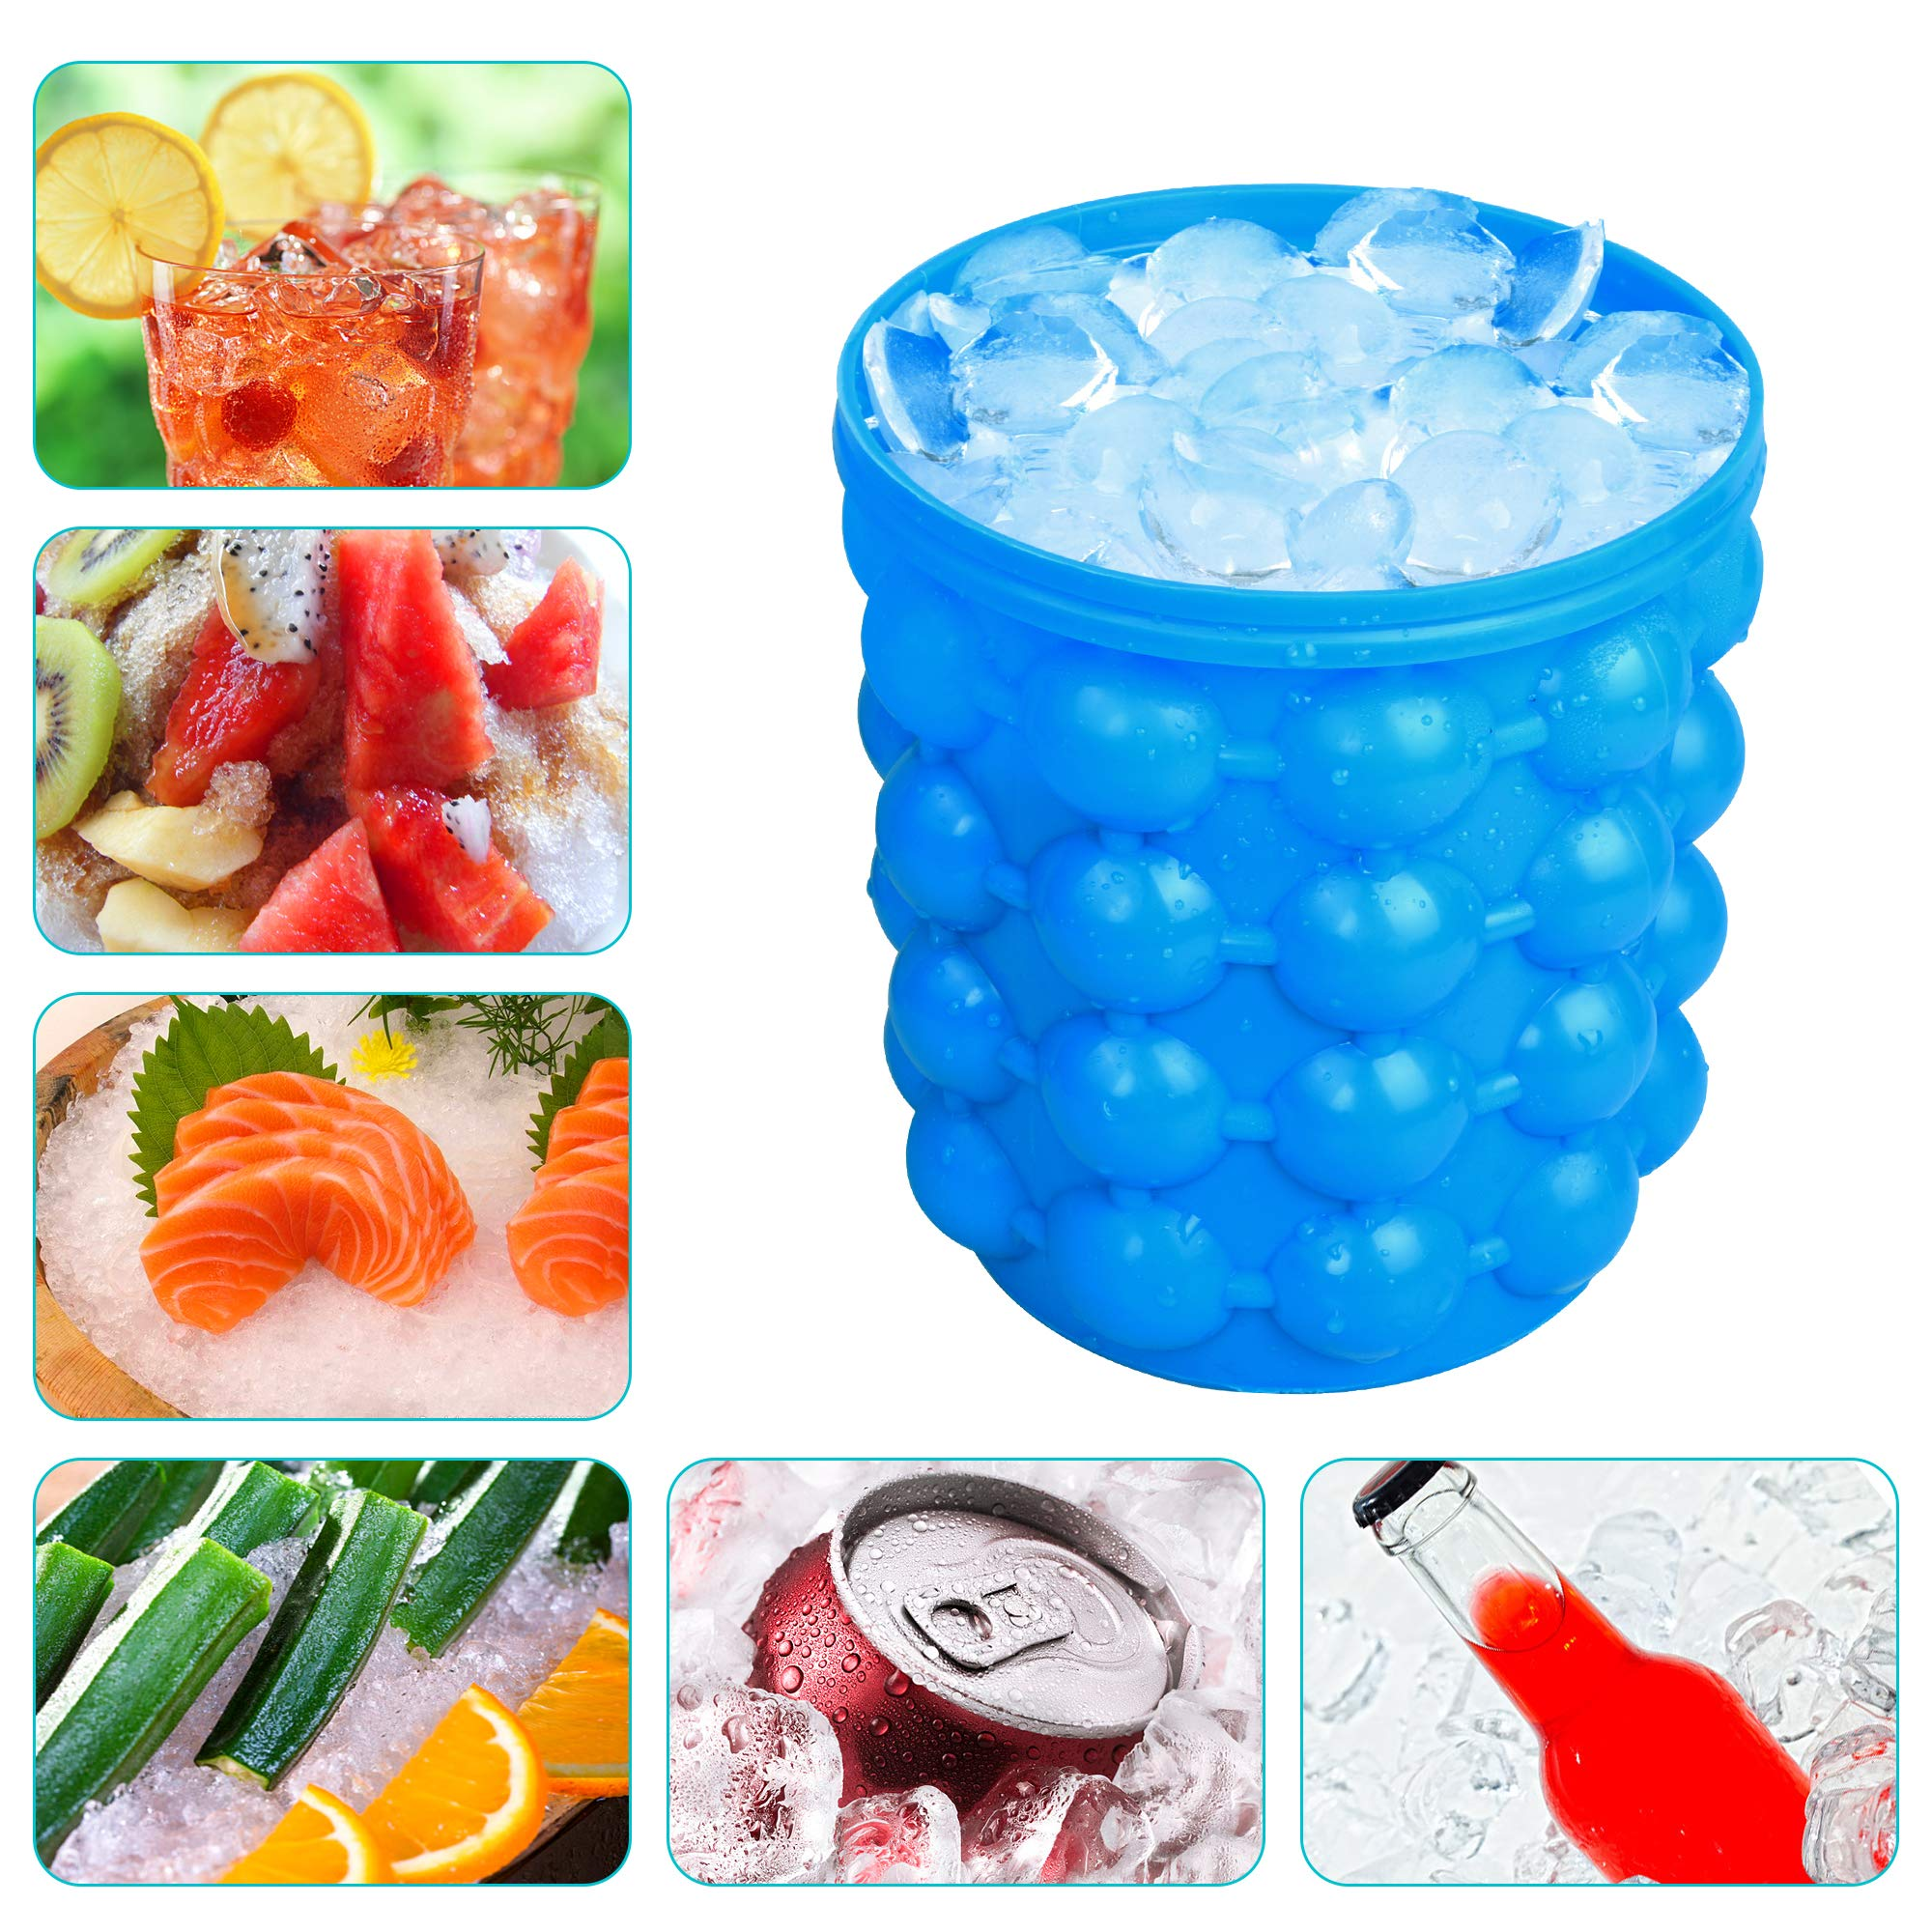 Besmon Ice Bucket, Large Silicone Ice Bucket & Ice Mold with lid, (2 in 1) Space Saving Ice Cube Maker, Silicon Ice Cube Maker, Portable Silicon Ice Cube Maker by Besmon